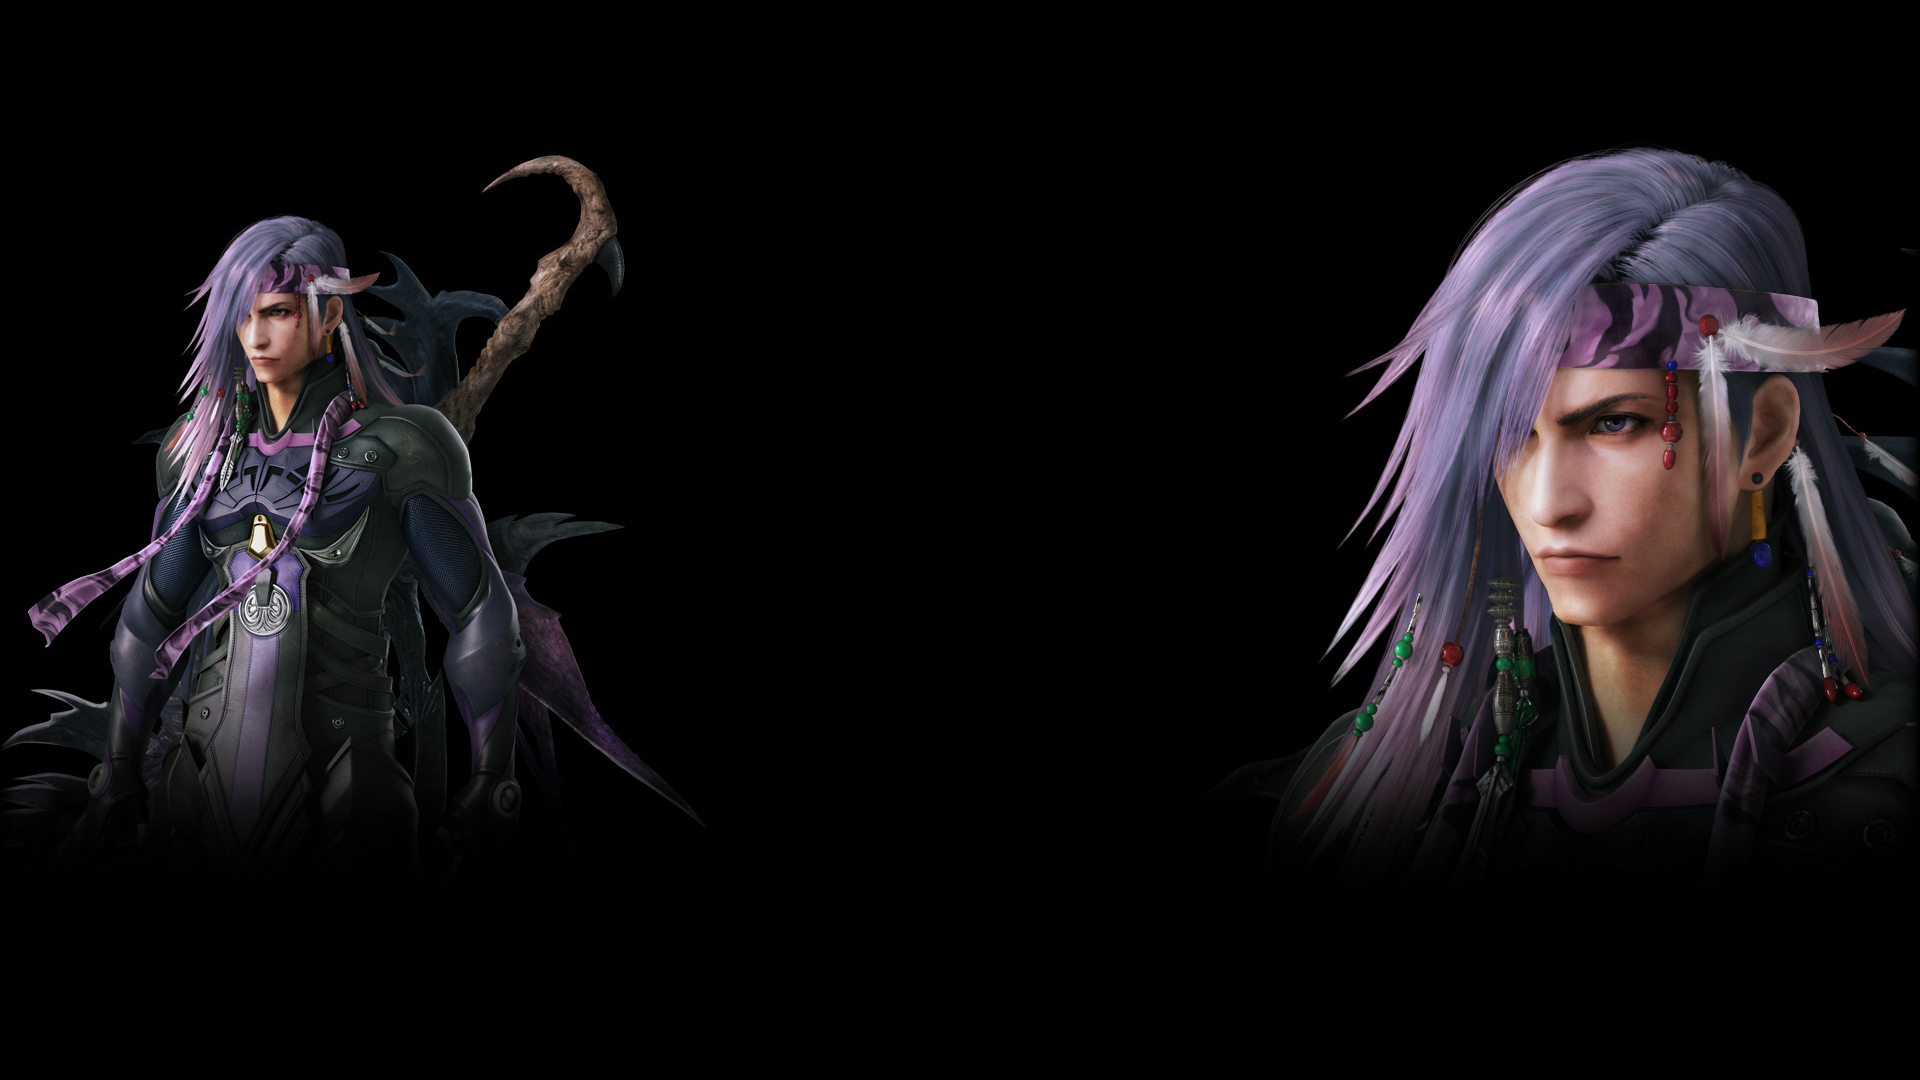 Final Fantasy Xiii 2 Wallpaper 001 Caius Wallpapers Ethereal Games